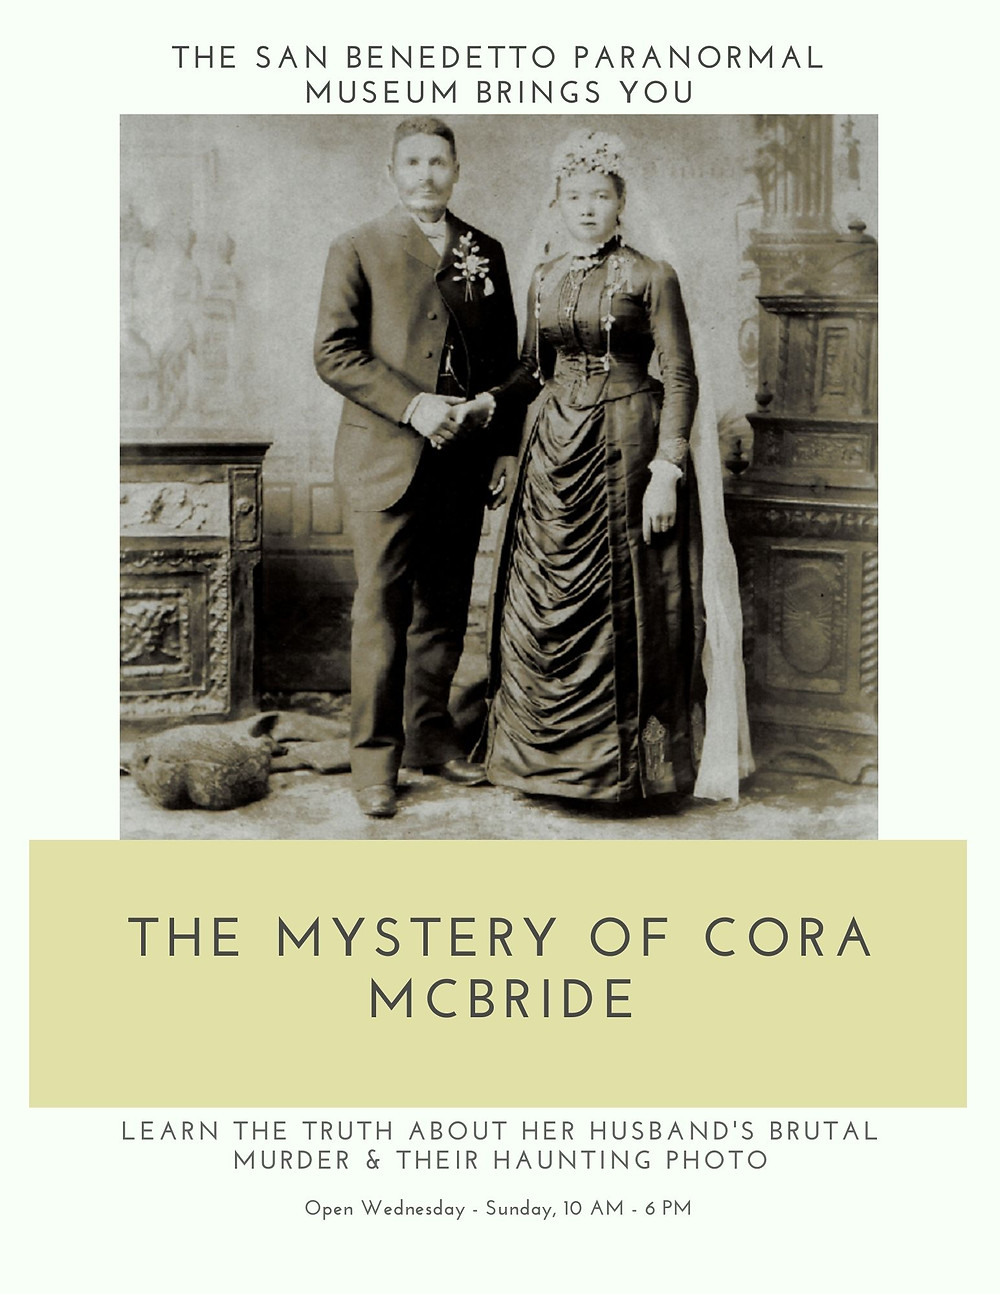 Flyer: The San Benedtto Paranormal Museum Brings You: The Mystery of Cora McBride. Learn the truth about her husband's brutal mirror and their haunting photo. Open: Wednesday - Sunday, 10 AM to 6 PM.